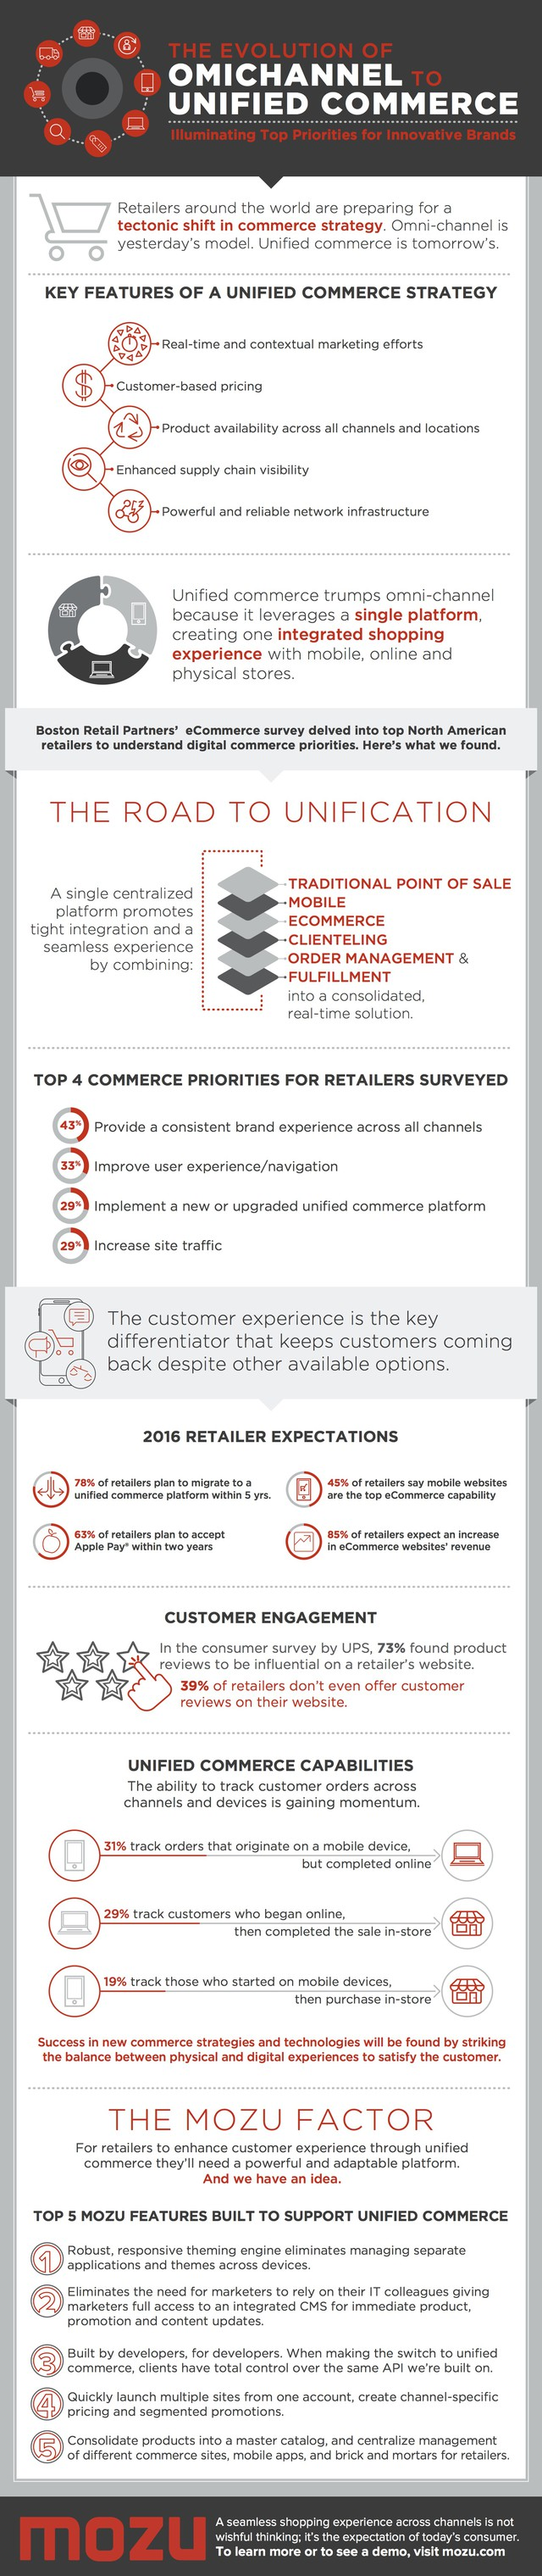 omnichanner-to-unified-commerce-infographic-plaza